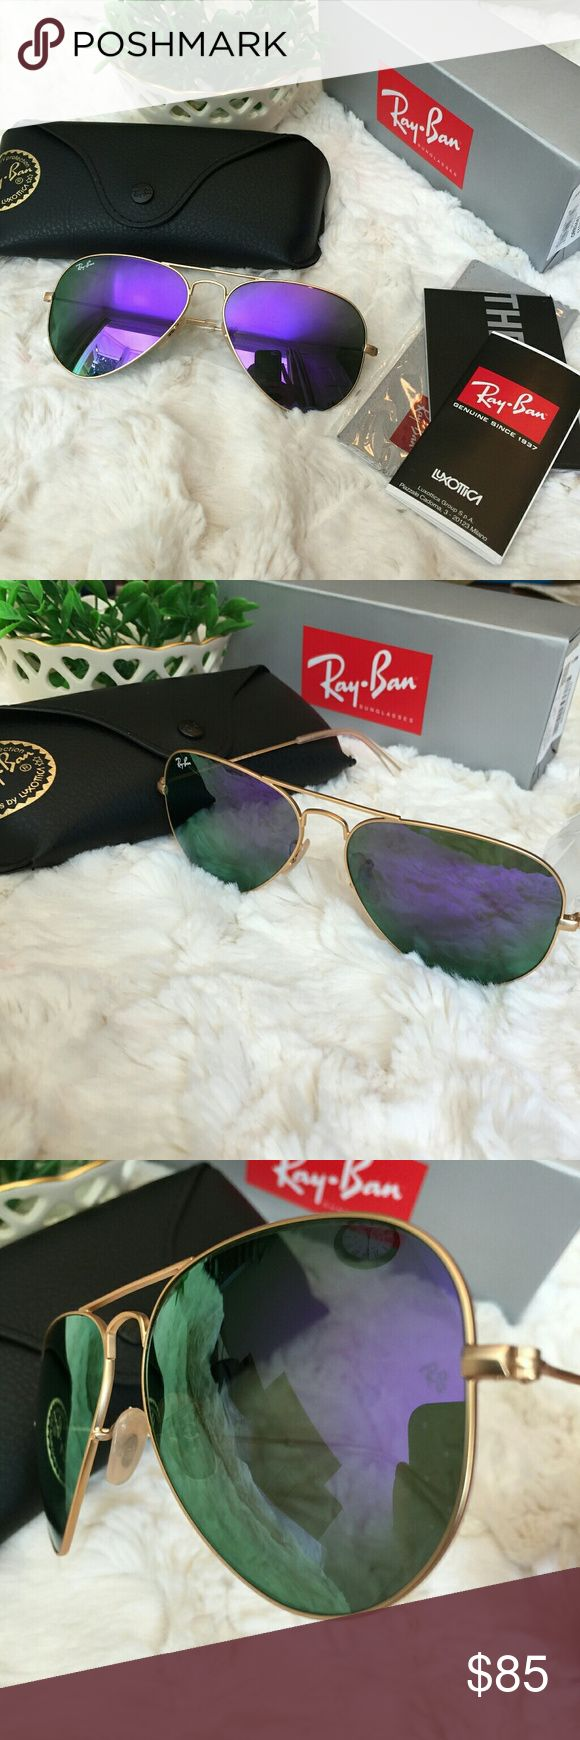 Authentic Ray Ban Aviator RB3025 in Purple gold ❤️️All my item are 100% Authentic / Real Ray ban ❤️Brand new never used  ❤️️Ray Ban Aviator RB3025 lens size 58MM ❤️made in Italy ❤️Frame color Gold ❤️come with case,cloth, booklet and box.  💕Feel free to ask any question💕 Ray-Ban Accessories Glasses